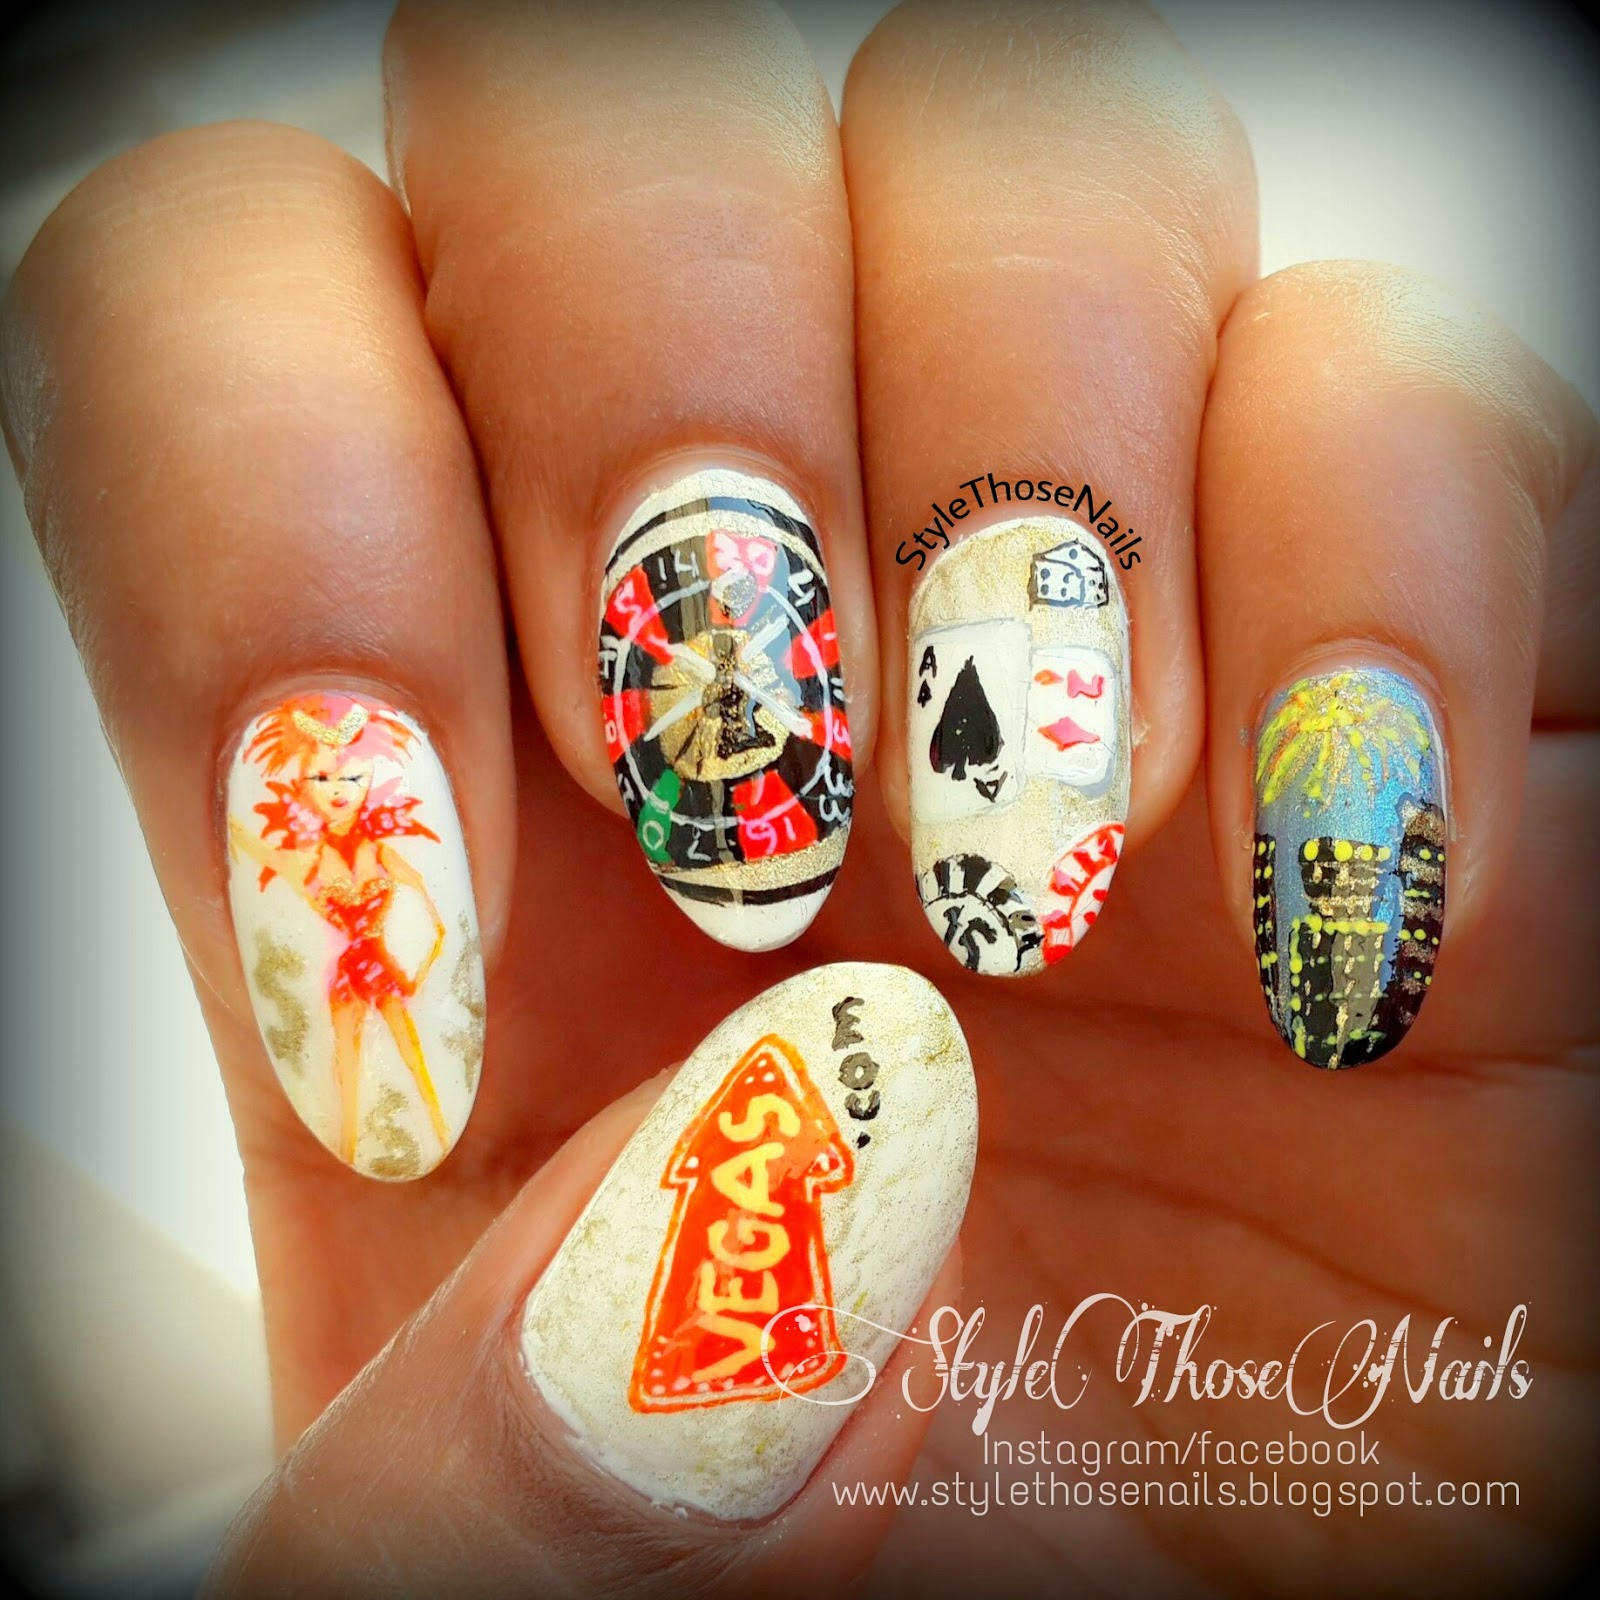 Style those nails night out in vegas a las vegas themed nail art night out in vegas a las vegas themed nail art prinsesfo Choice Image